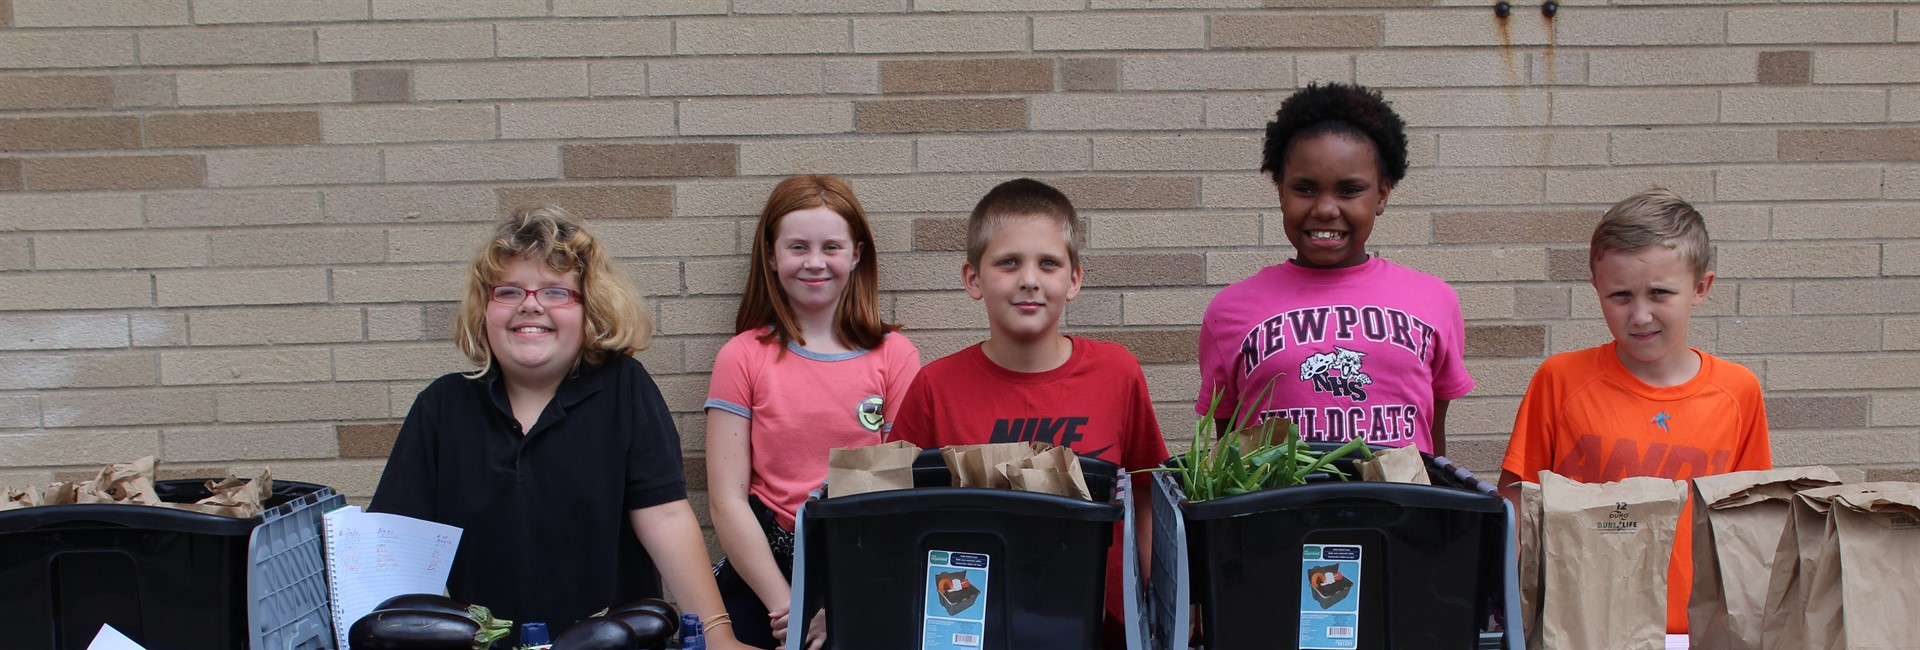 Students in the Latonia Elementary Herbmania and Garden Club.